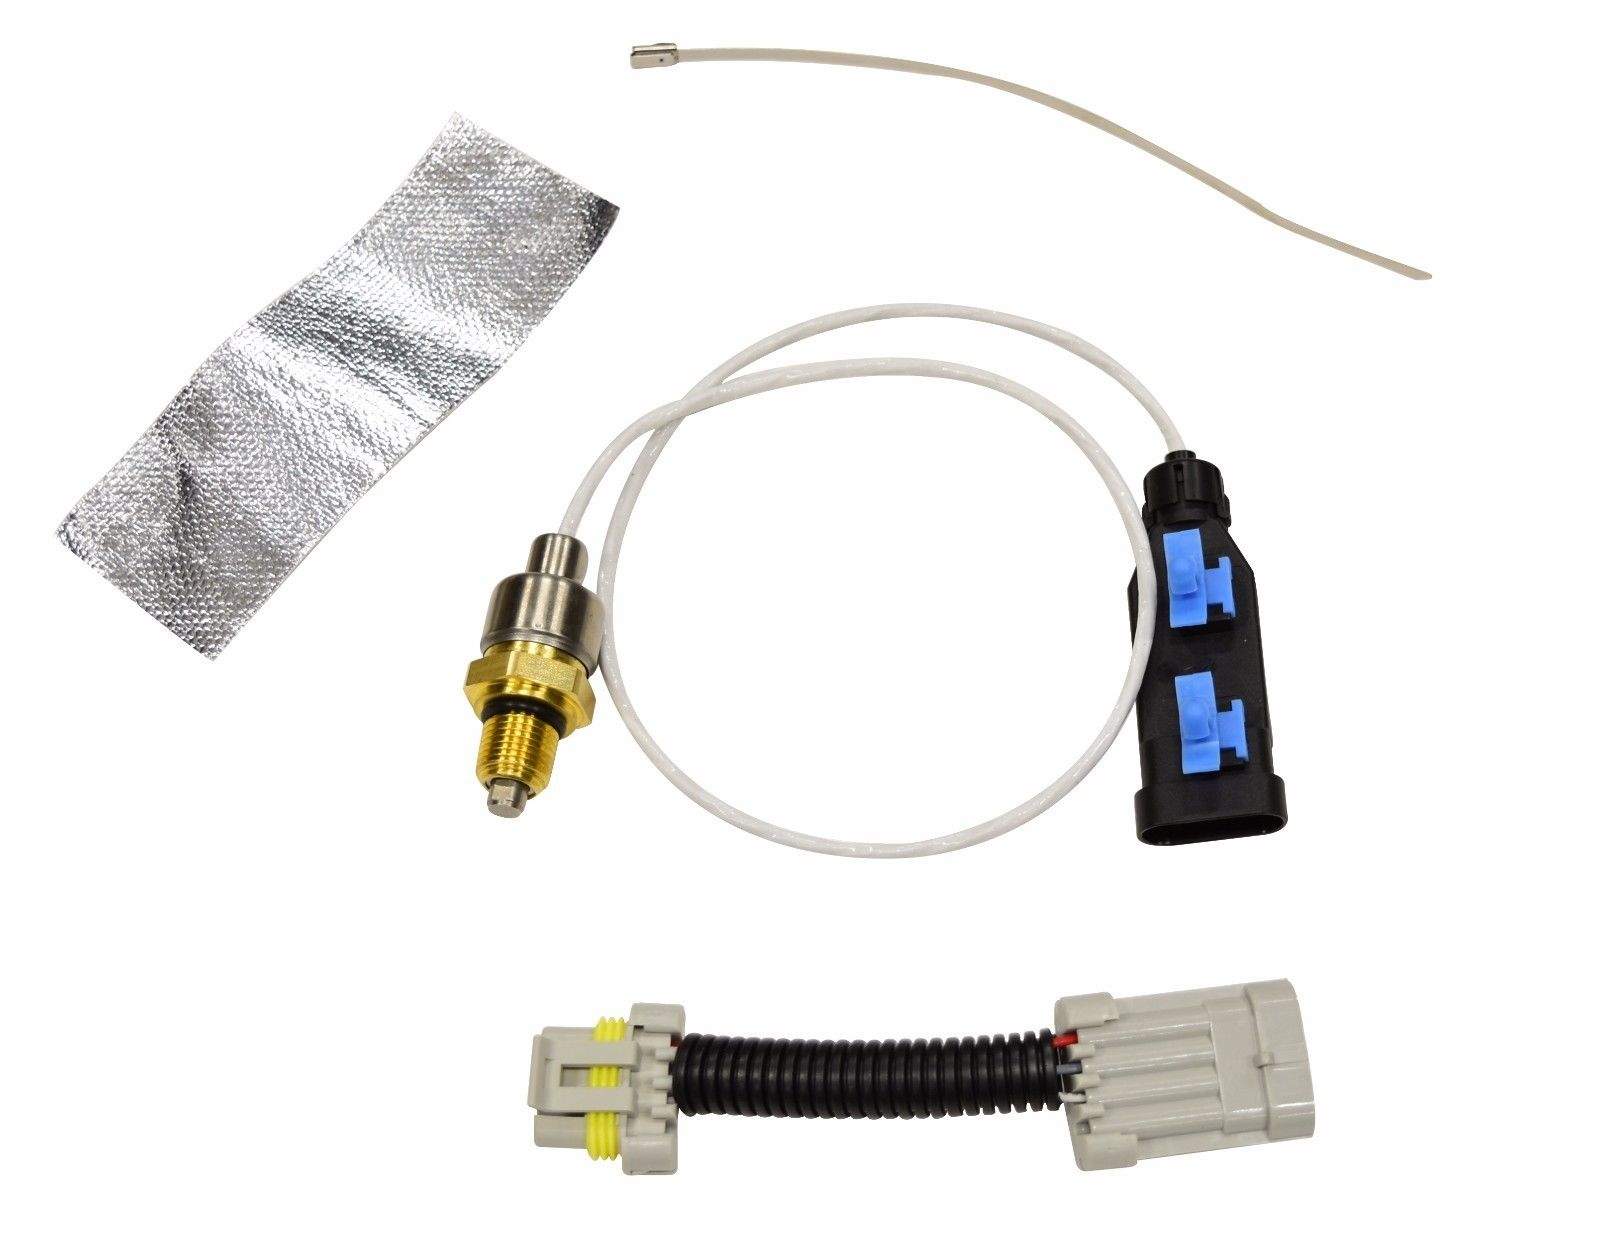 SPOOLOGIC Turbo Vane Position Sensor Kit for 04.5-15 LLY LBZ LMM LML Duramax